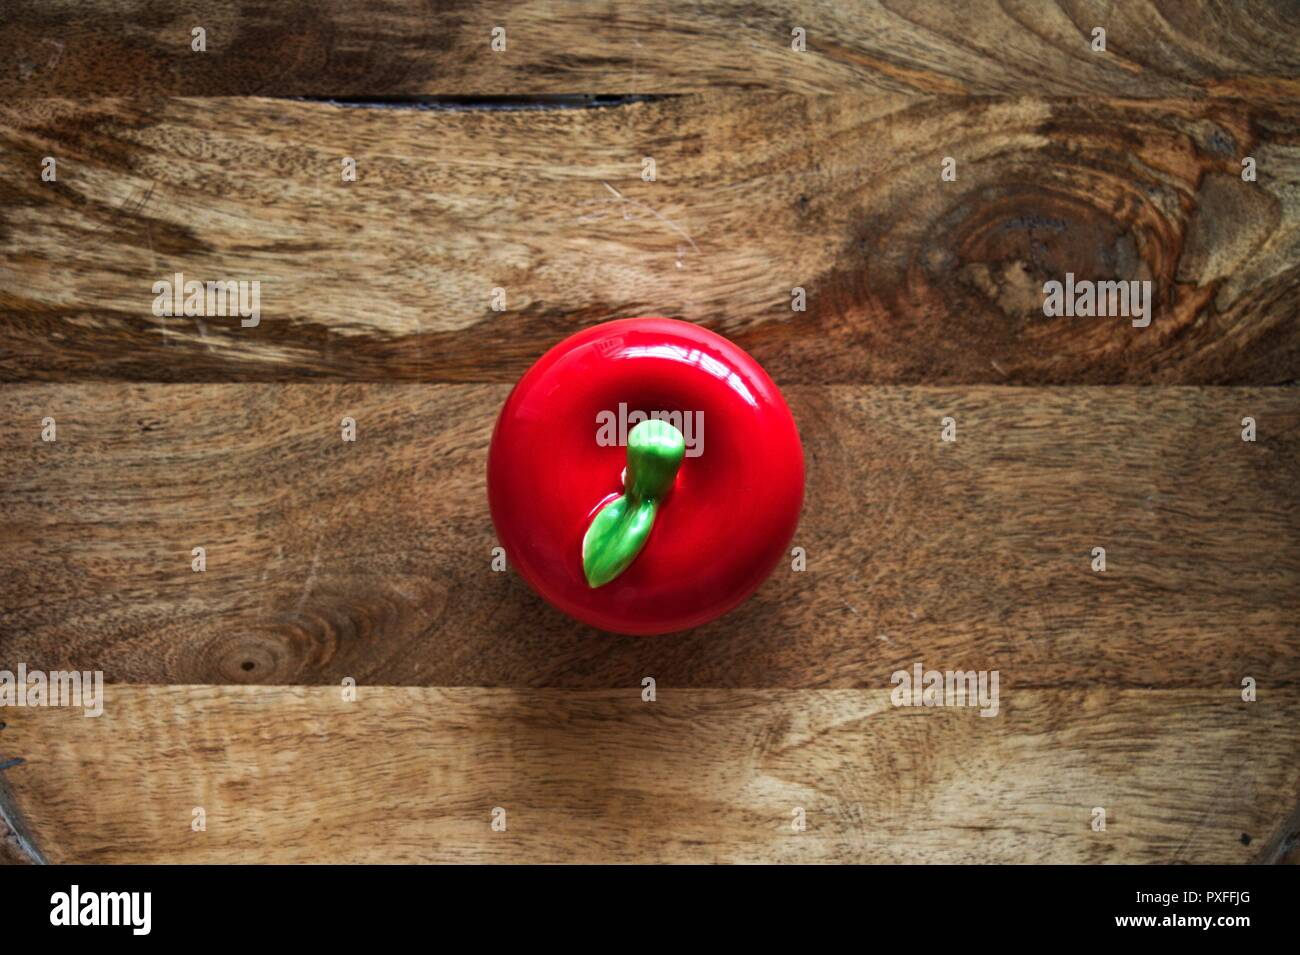 Red, round ceramic apple,flat lay, against wooden board background. Stock Photo